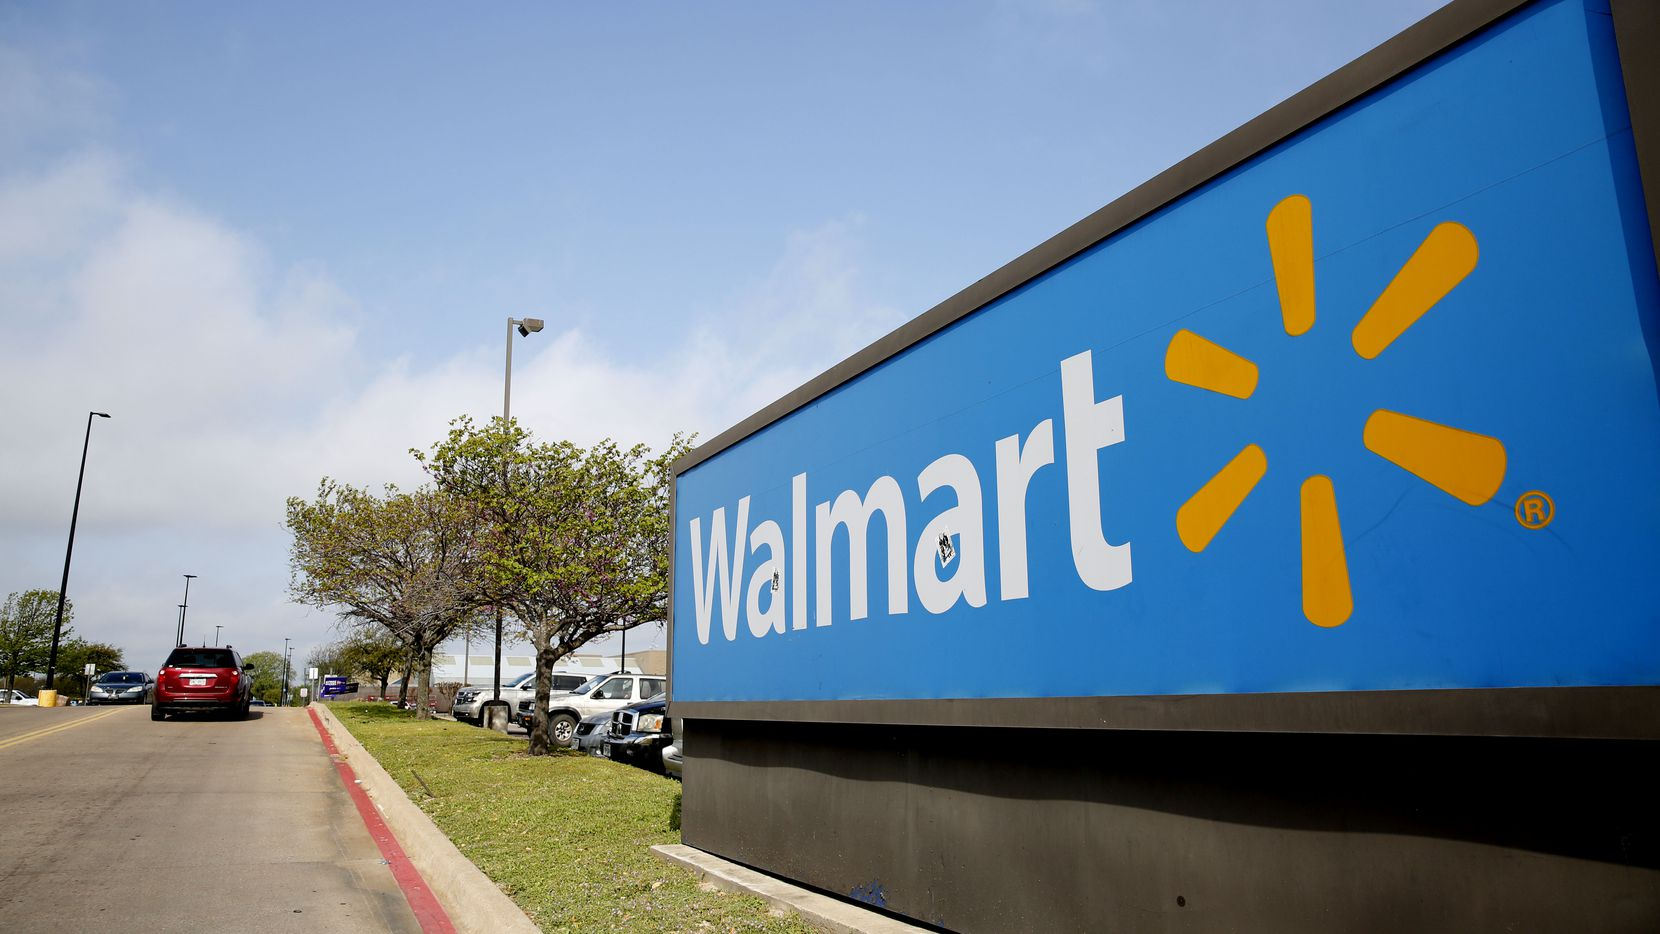 Walmart often tests ideas first in the Dallas area. This month it started a pilot program of Tech Services kiosks in four local stores.